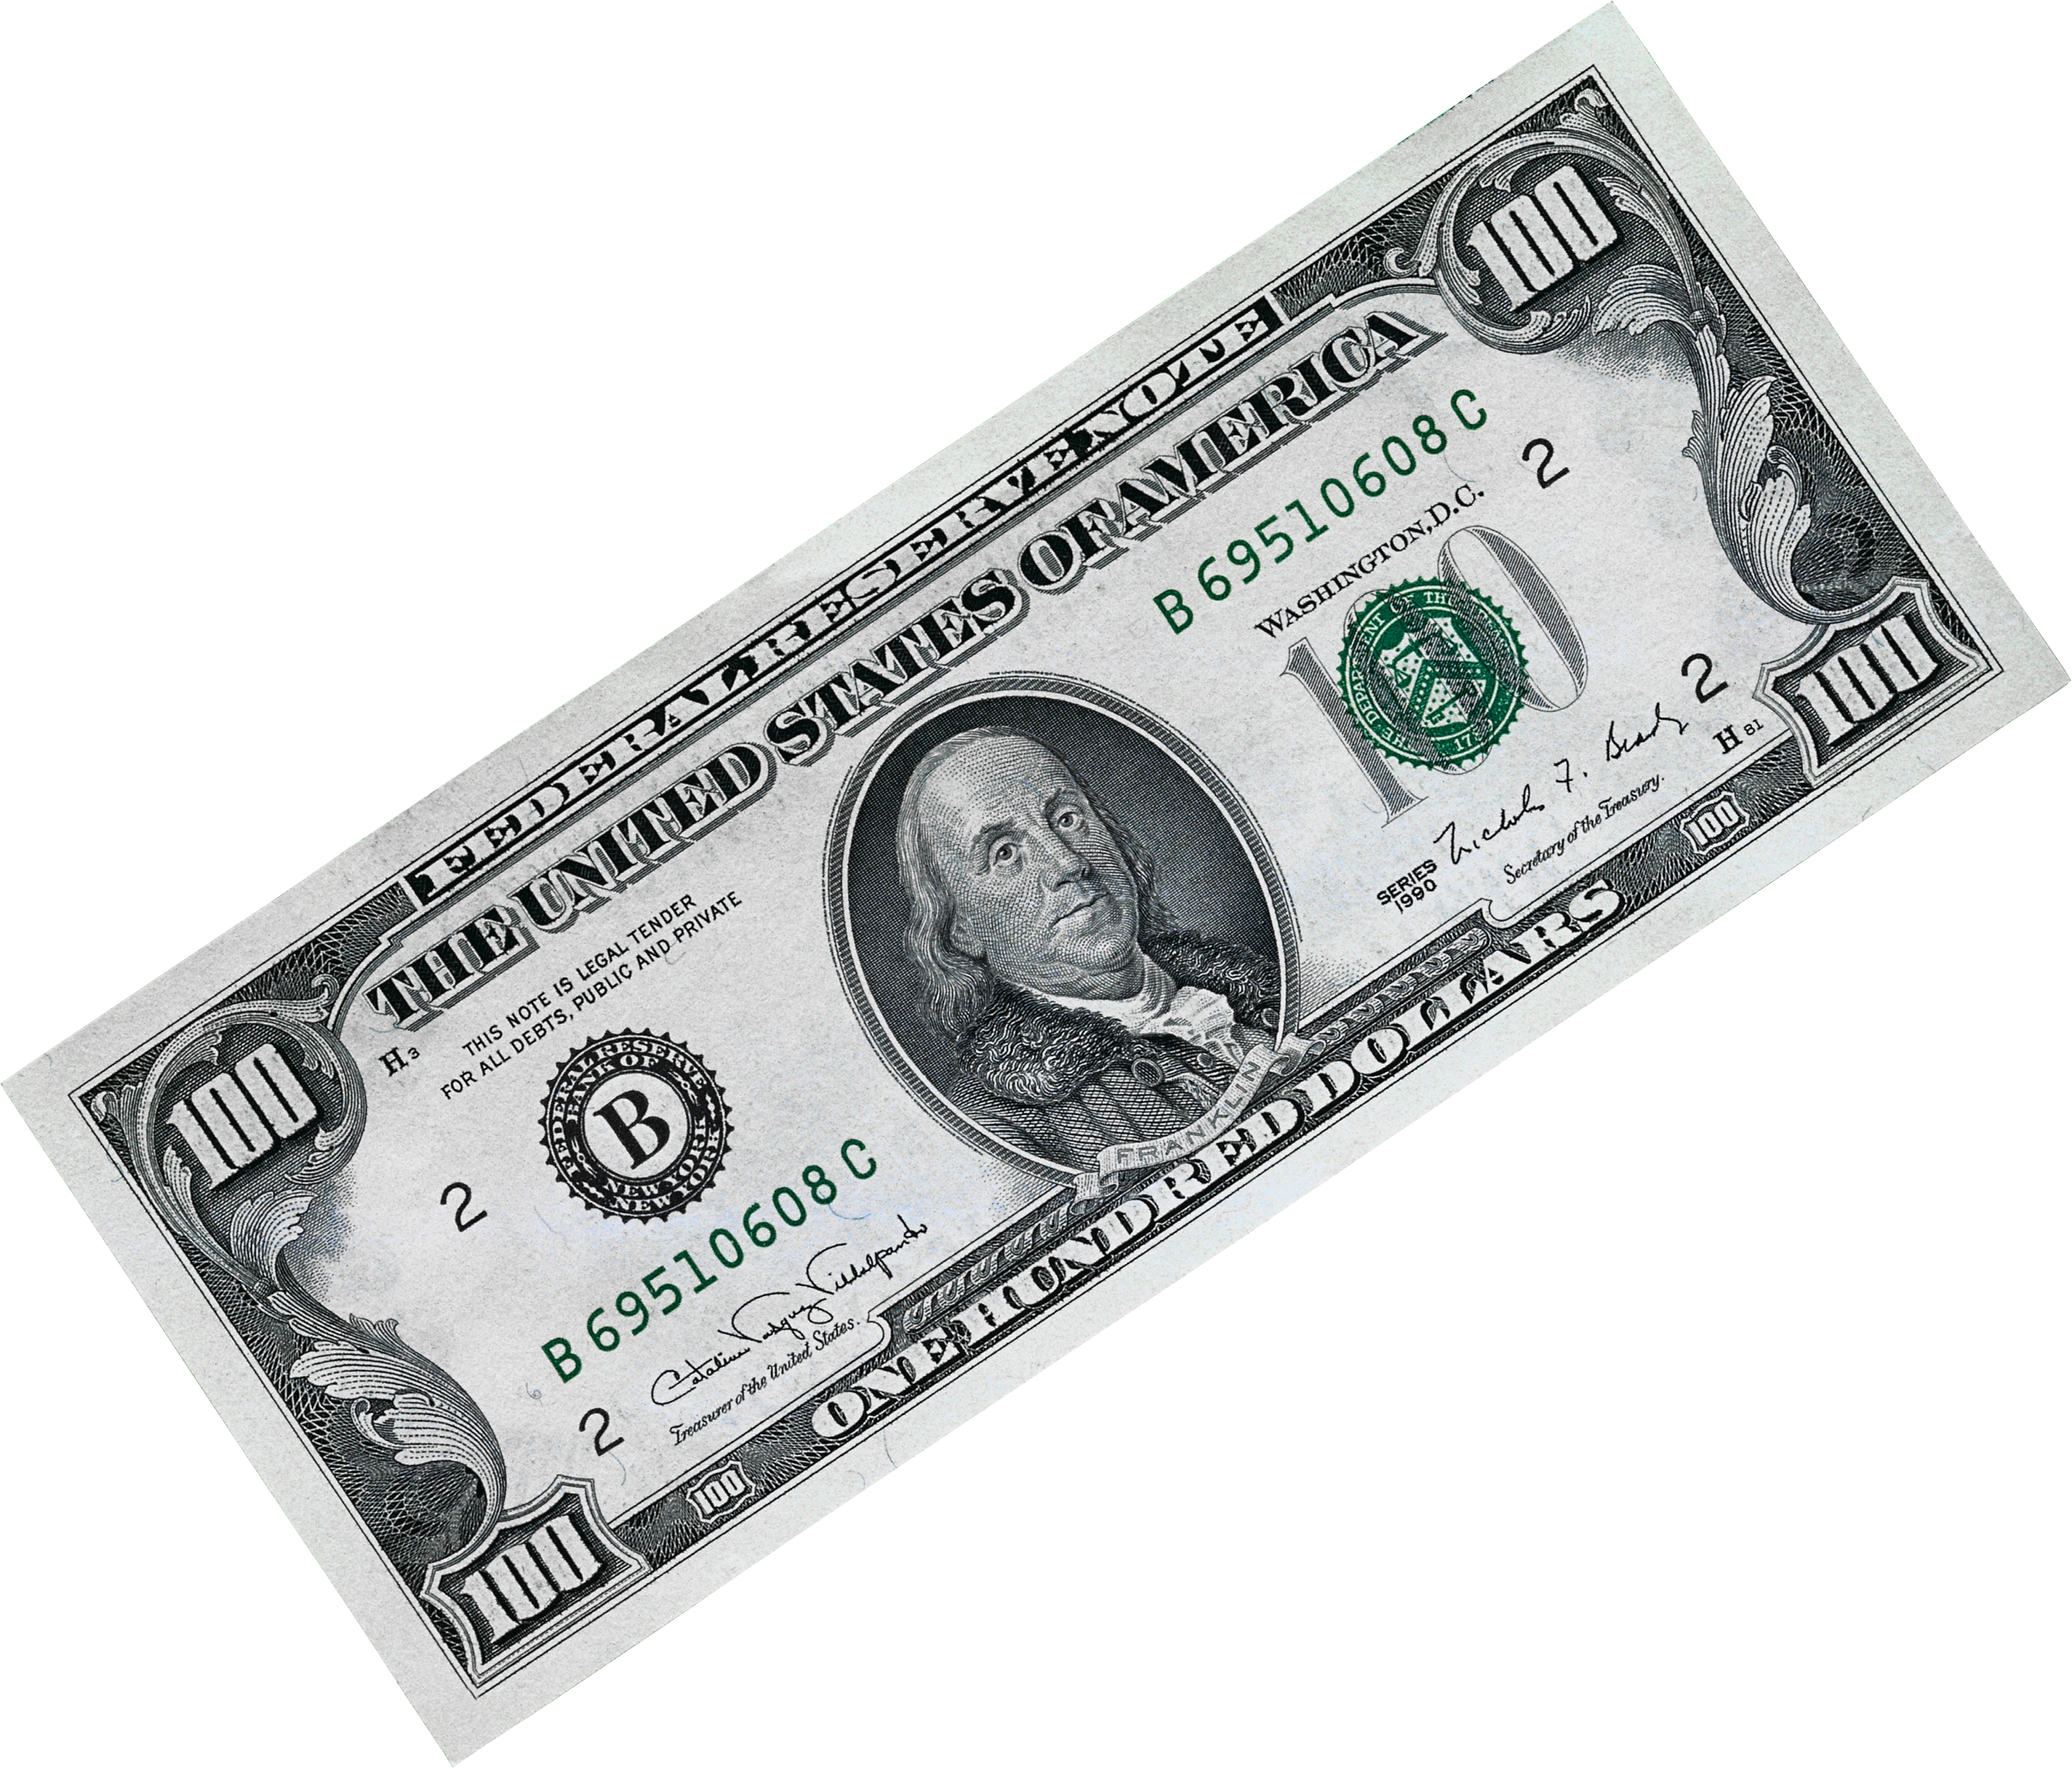 Money change clipart black and white svg black and white stock Money's PNG Image - PurePNG | Free transparent CC0 PNG Image Library svg black and white stock